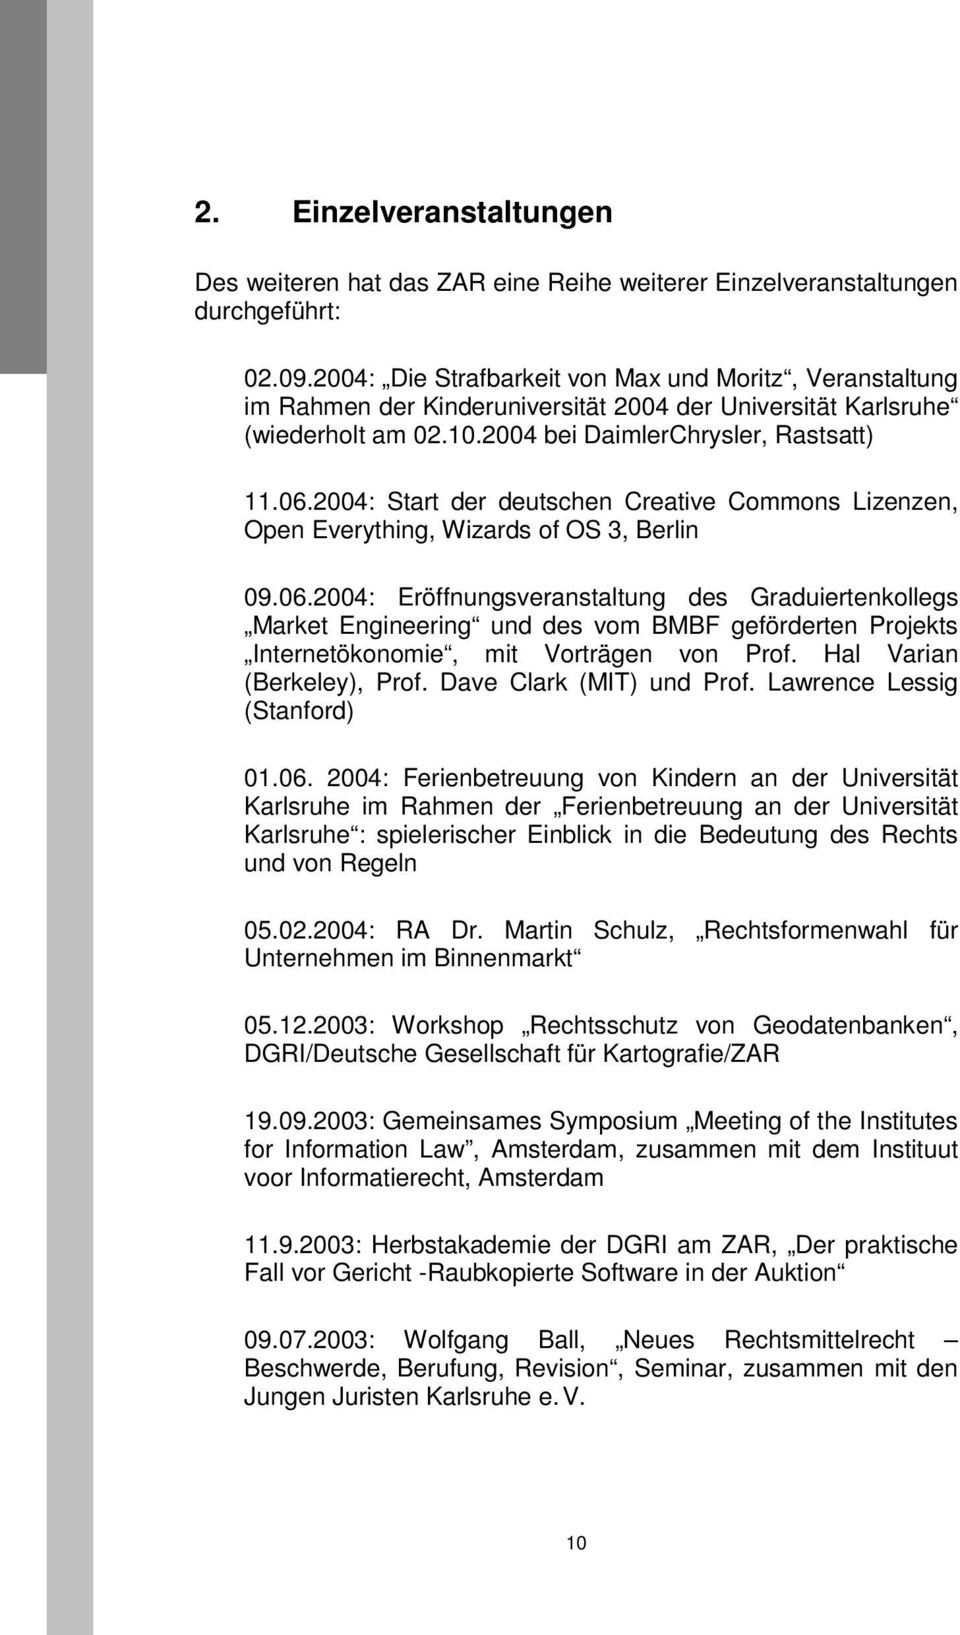 2004: Start der deutschen Creative Commons Lizenzen, Open Everything, Wizards of OS 3, Berlin 09.06.